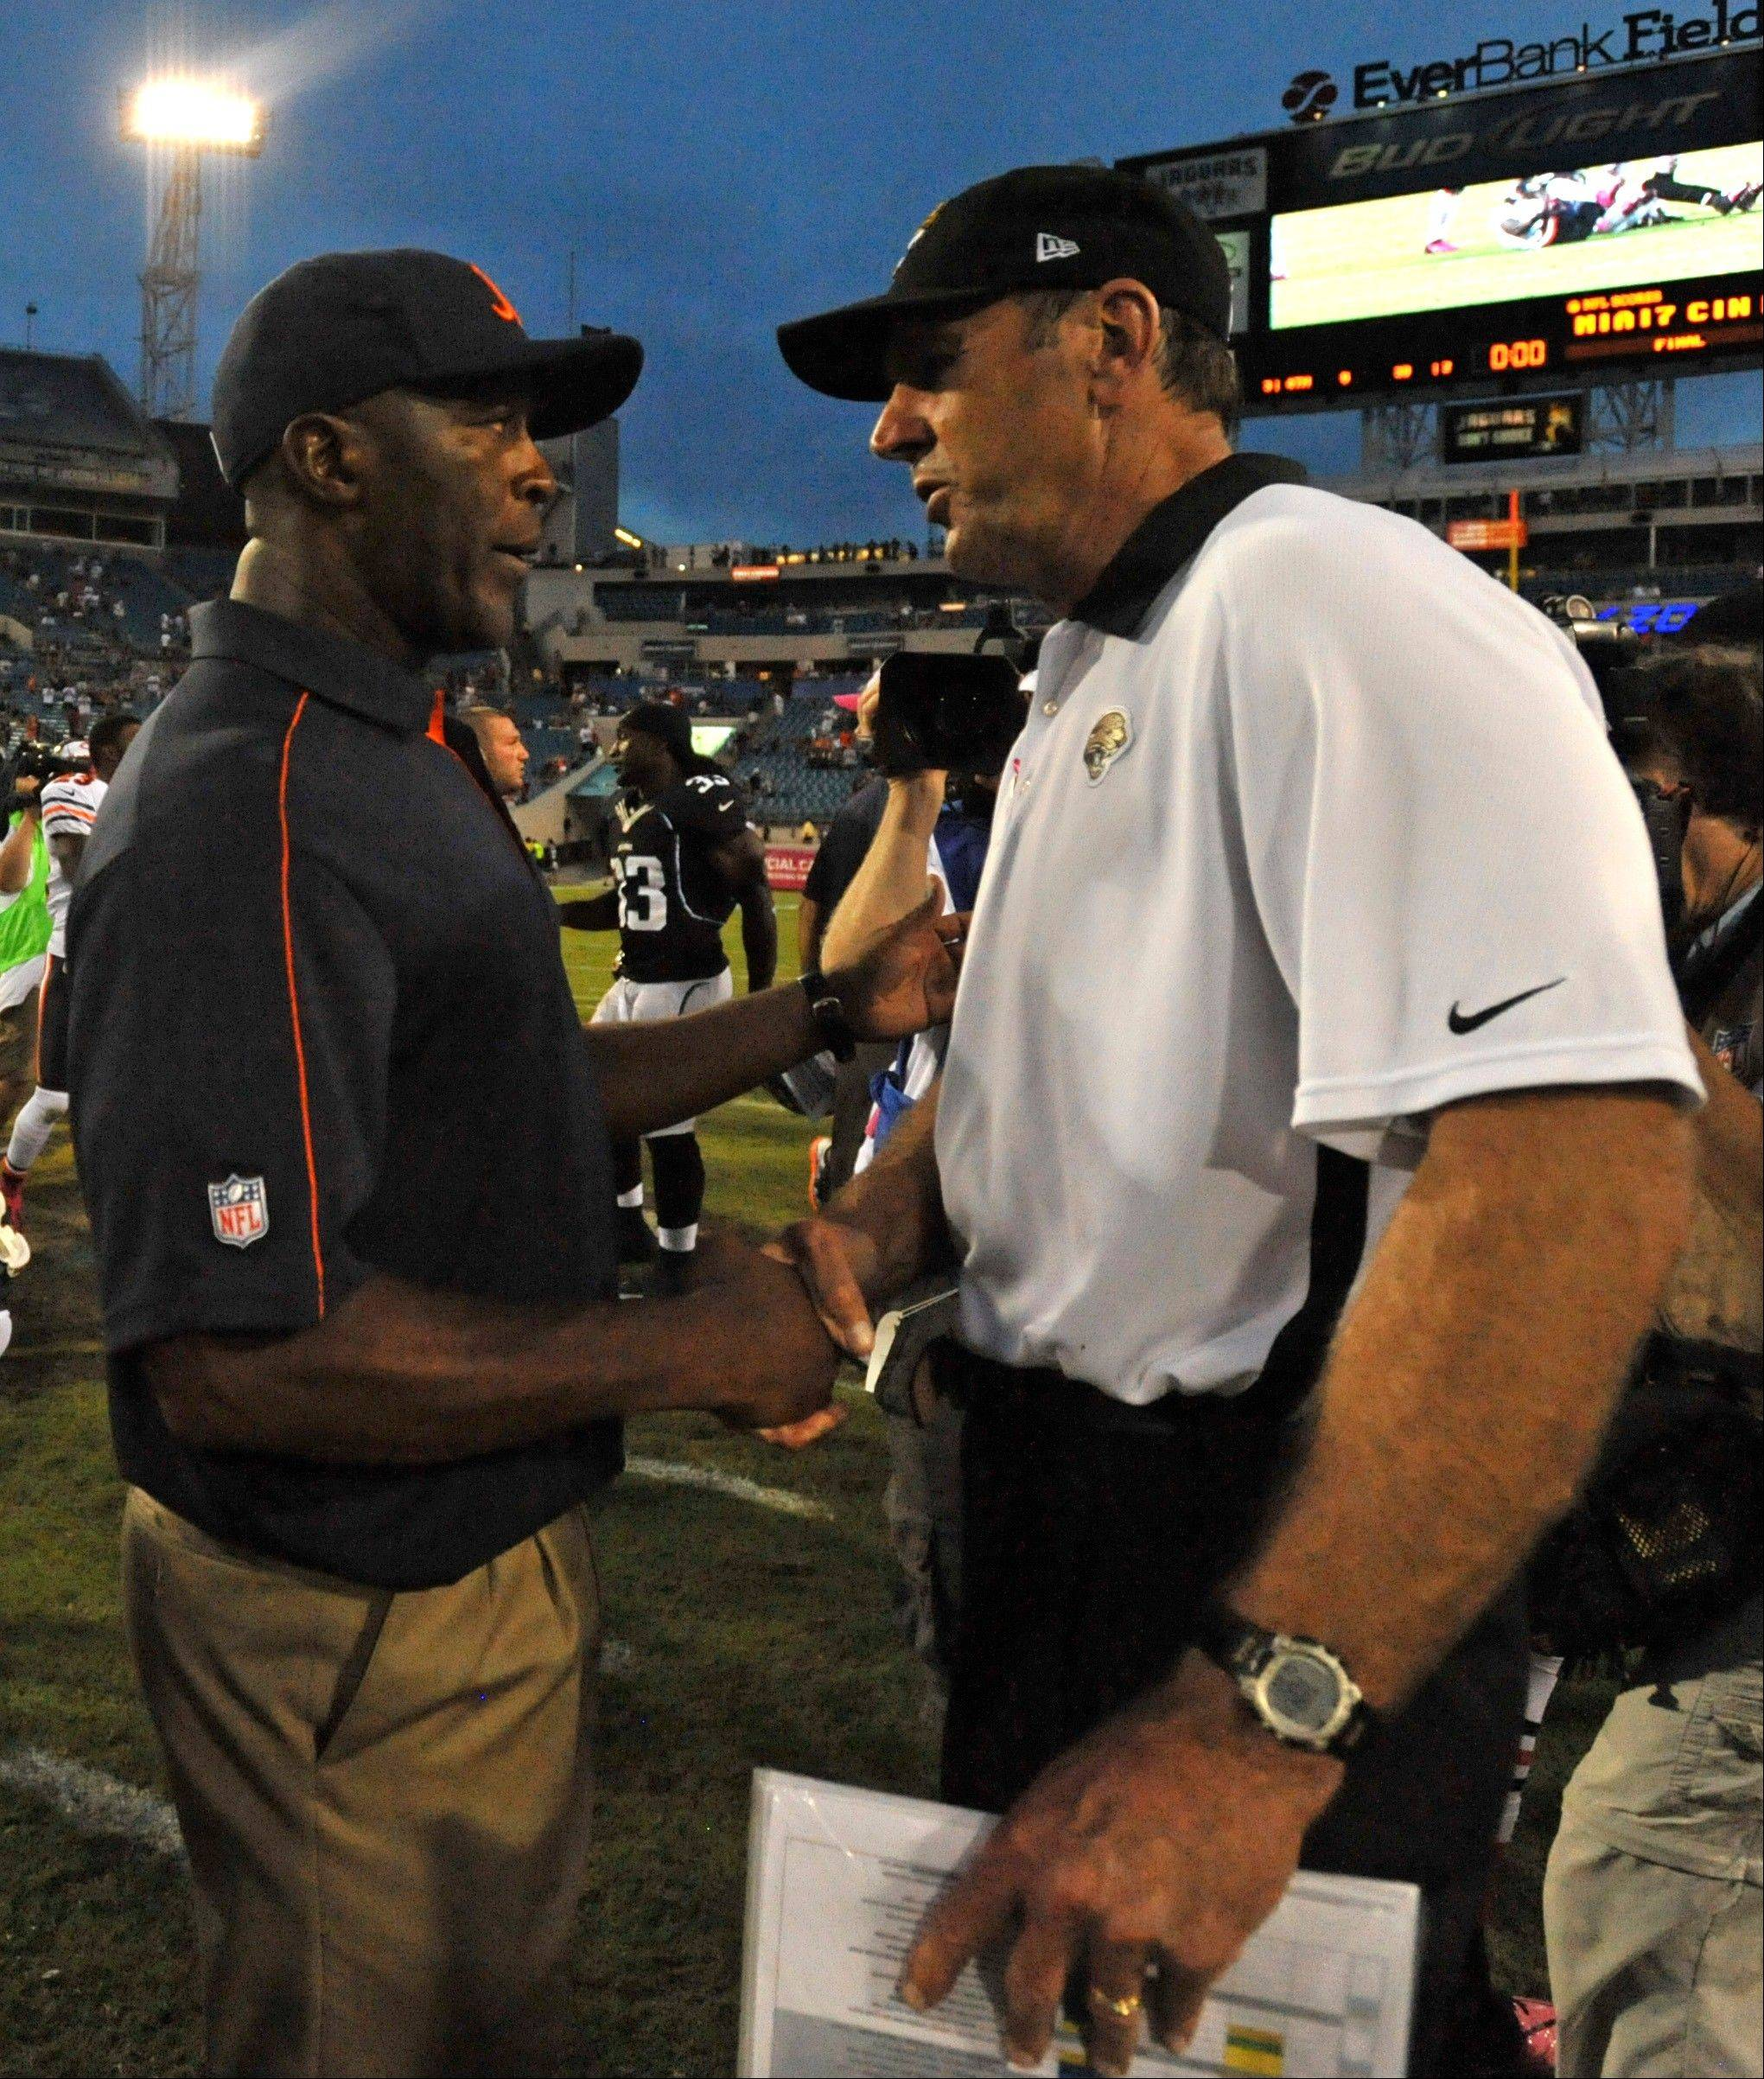 Chicago Bears head coach Lovie Smith, left, and Jacksonville Jaguars head coach Mike Mularkey greet each other after an NFL football game, Sunday, Oct. 7, 2012, in Jacksonville, Fla. Chicago Bears beat the Jacksonville Jaguars 41-3.